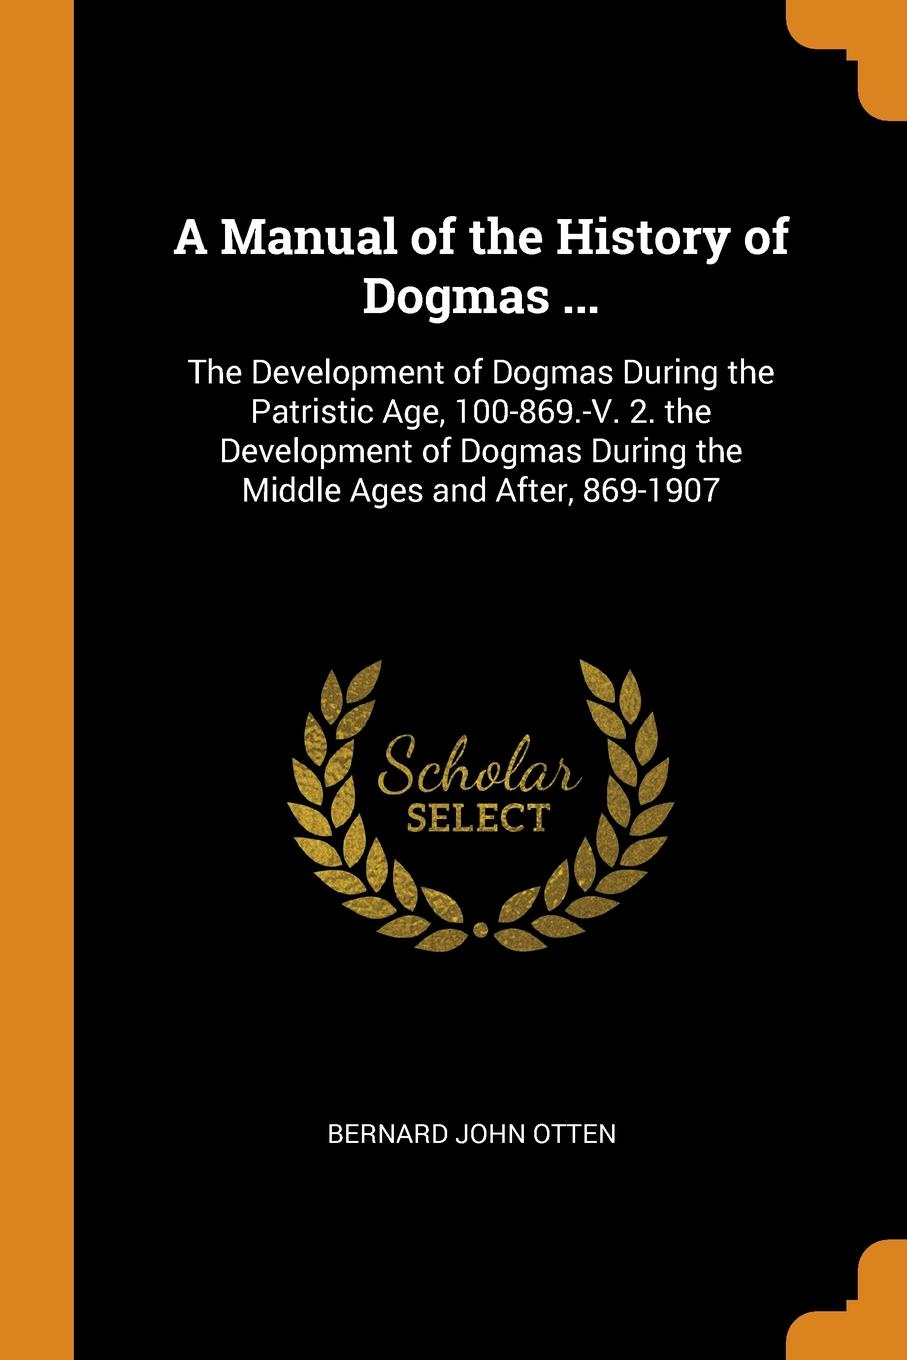 A-Manual-of-the-History-of-Dogmas--The-Development-of-Dogmas-During-the-Patristic-Age-100-869-V-2-the-Development-of-Dogmas-During-the-Middle-Ages-and